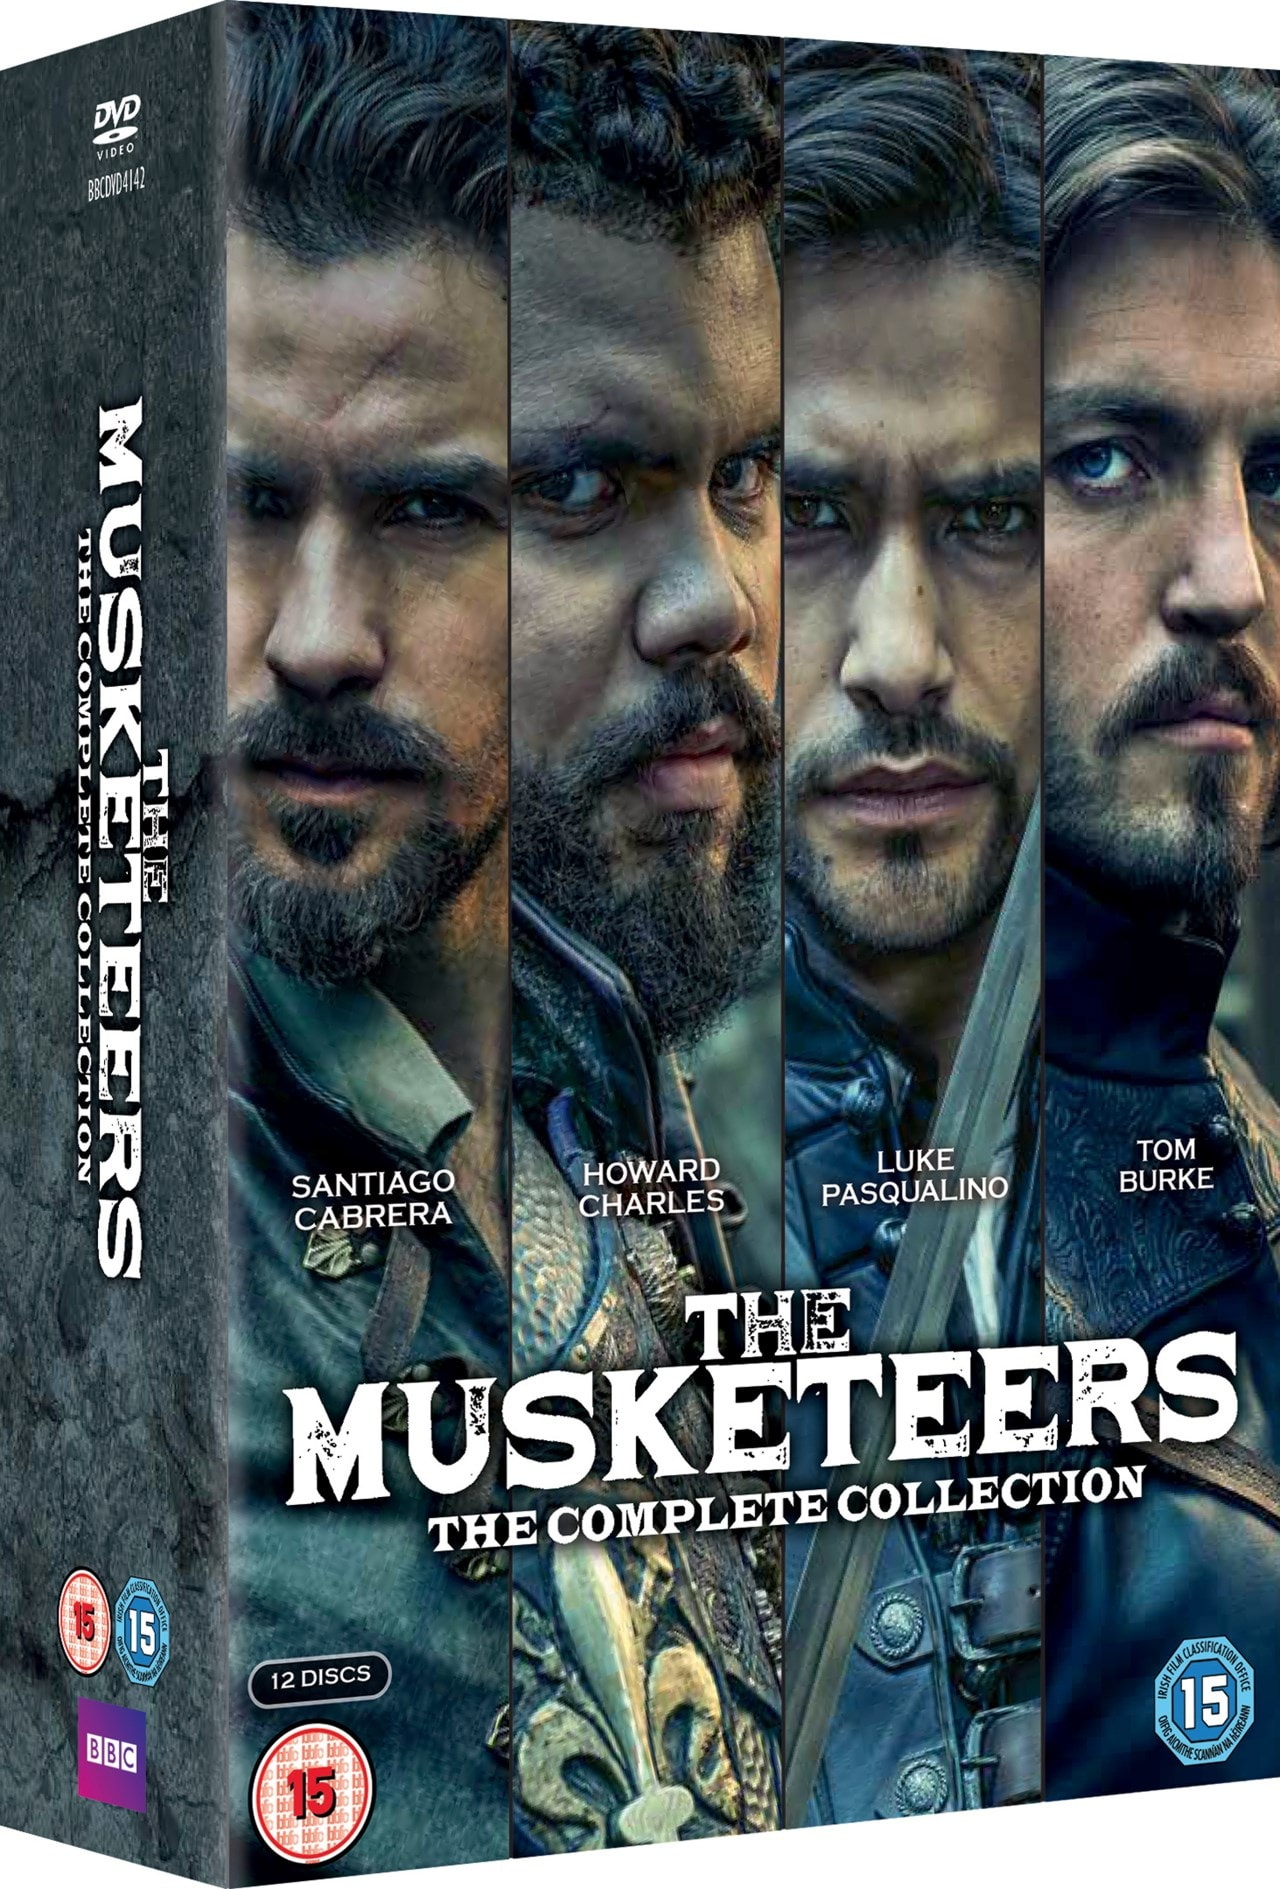 The Musketeers: The Complete Collection - 2